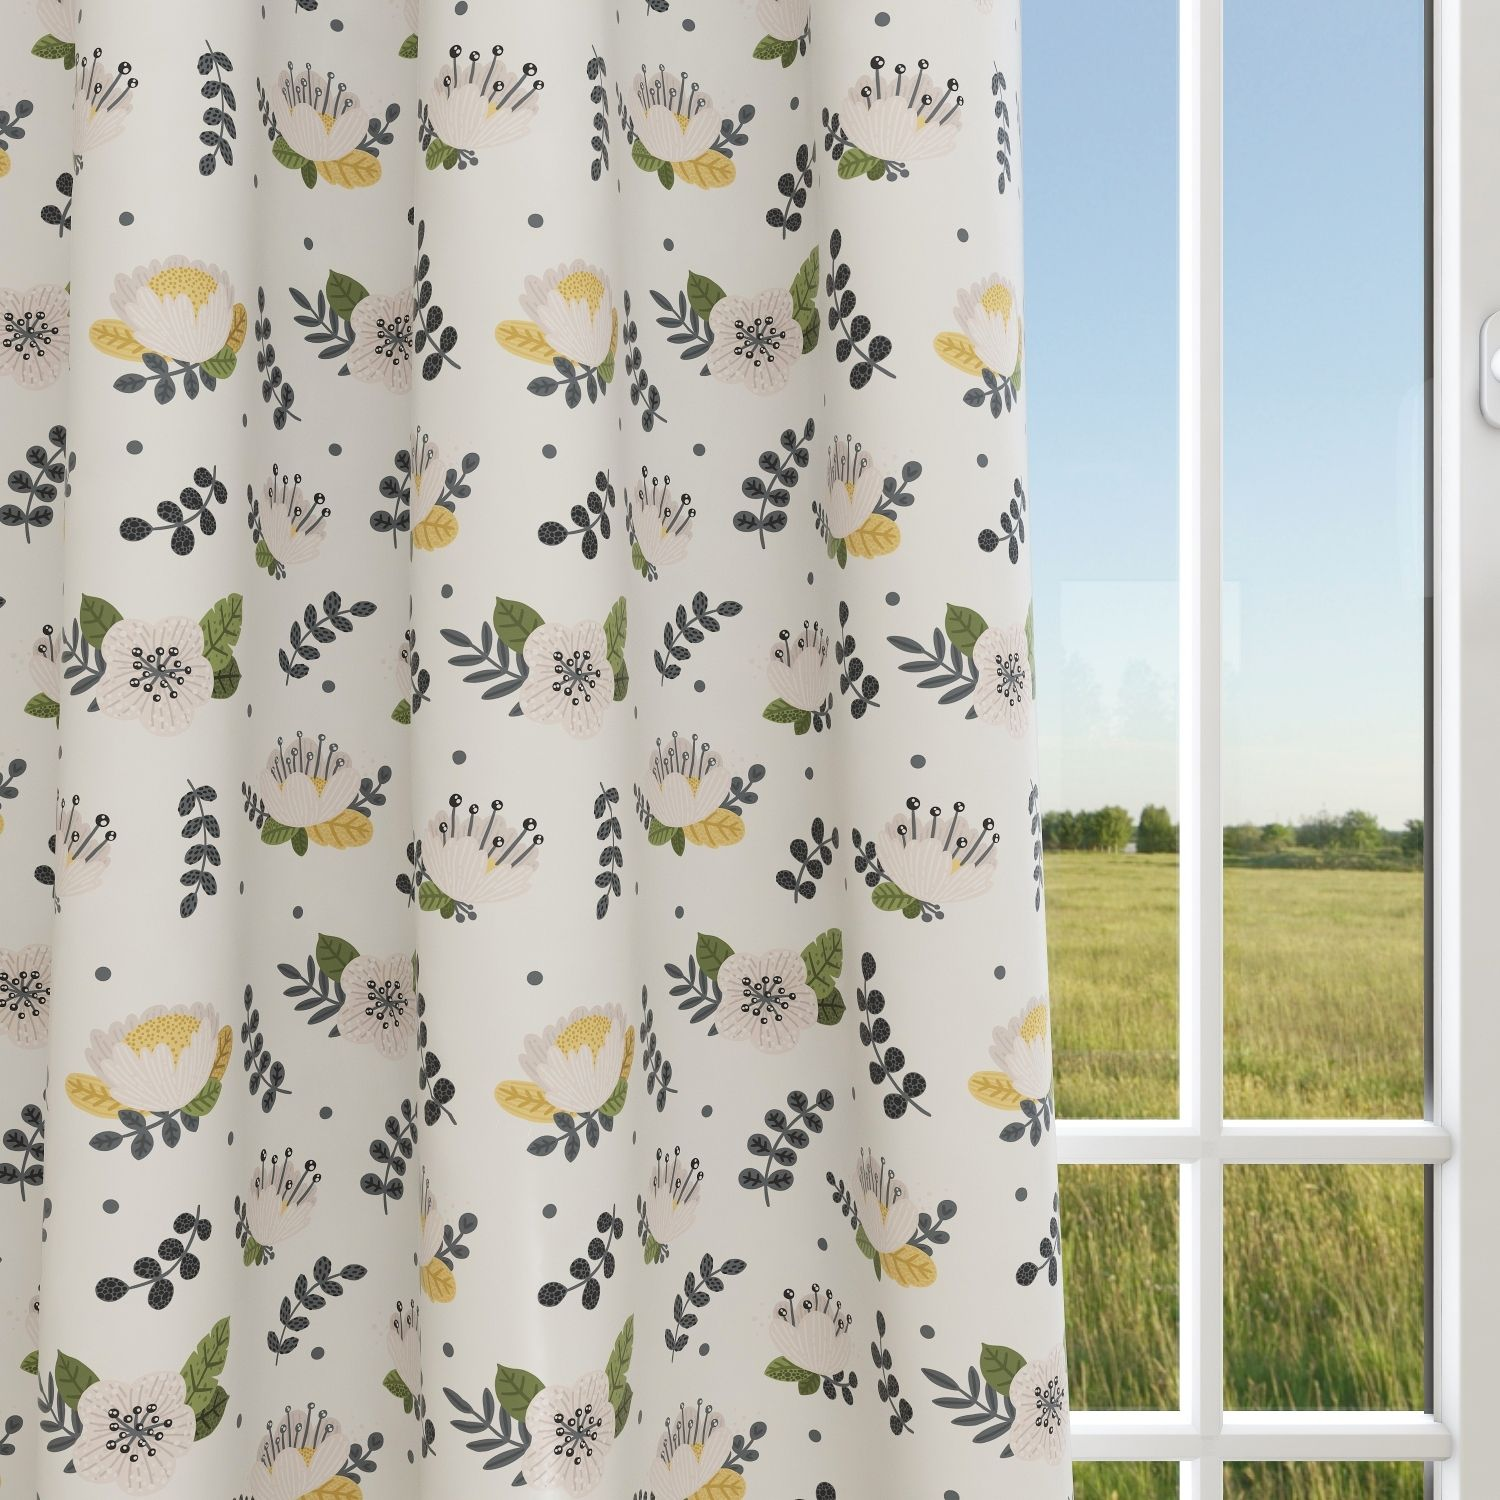 Kids & Nursery Blackout Curtains - Full Bloom